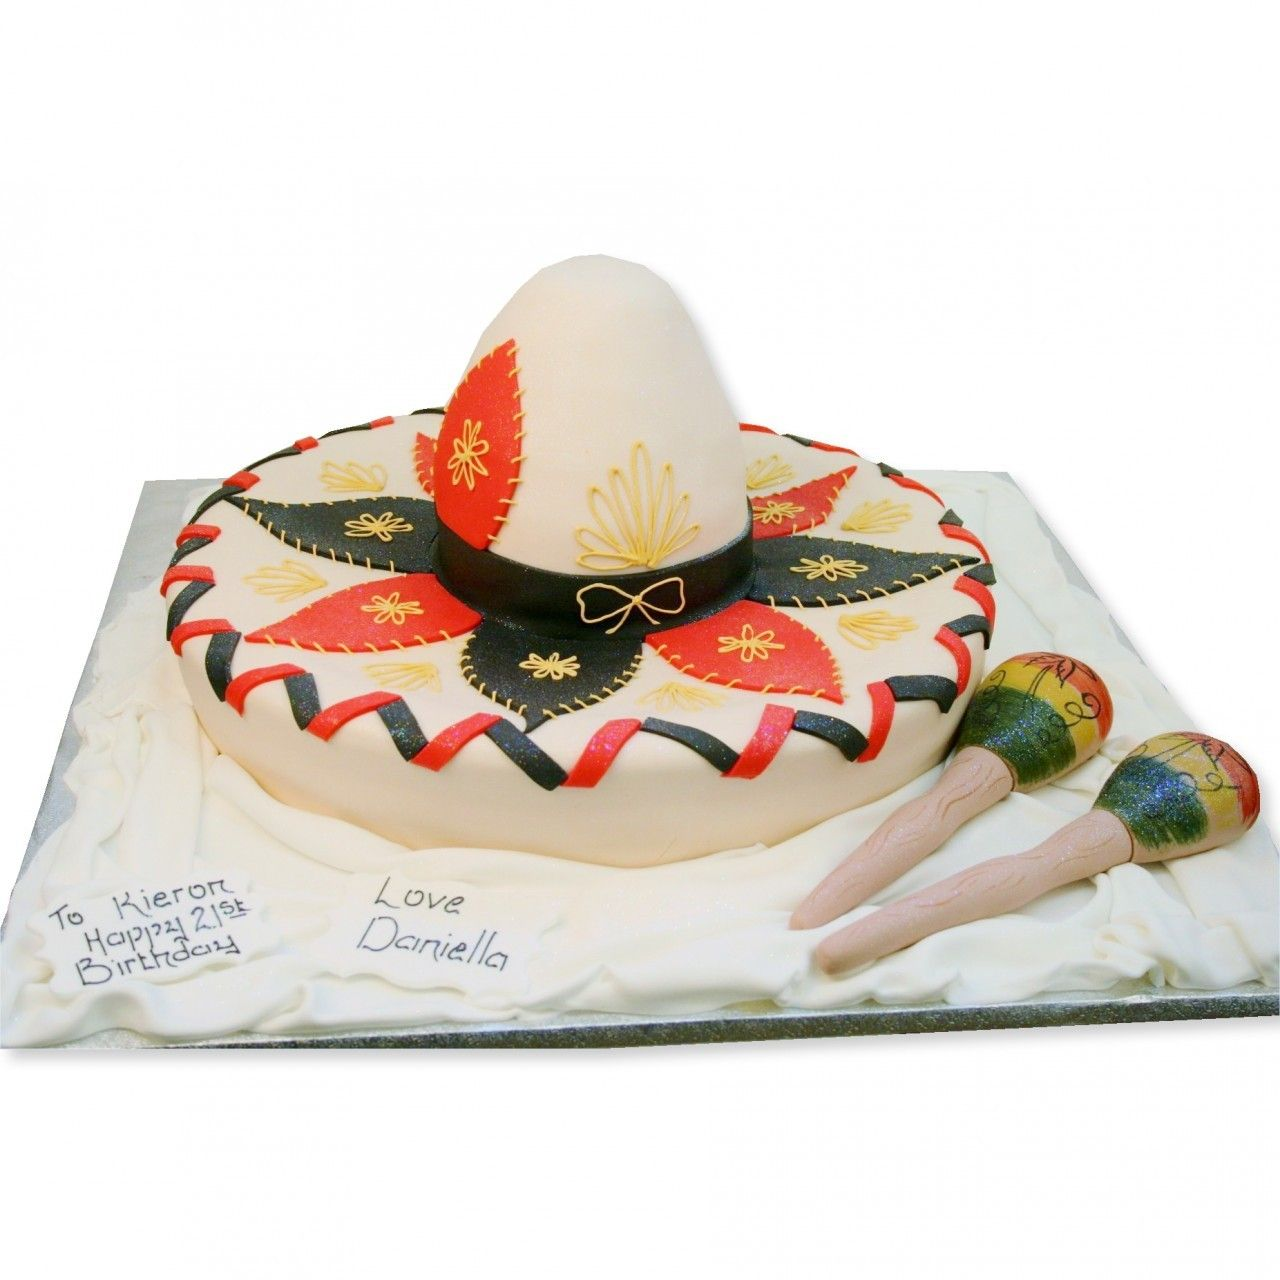 Sombrero Cake Freshly Made Delicious And Delivered cakes